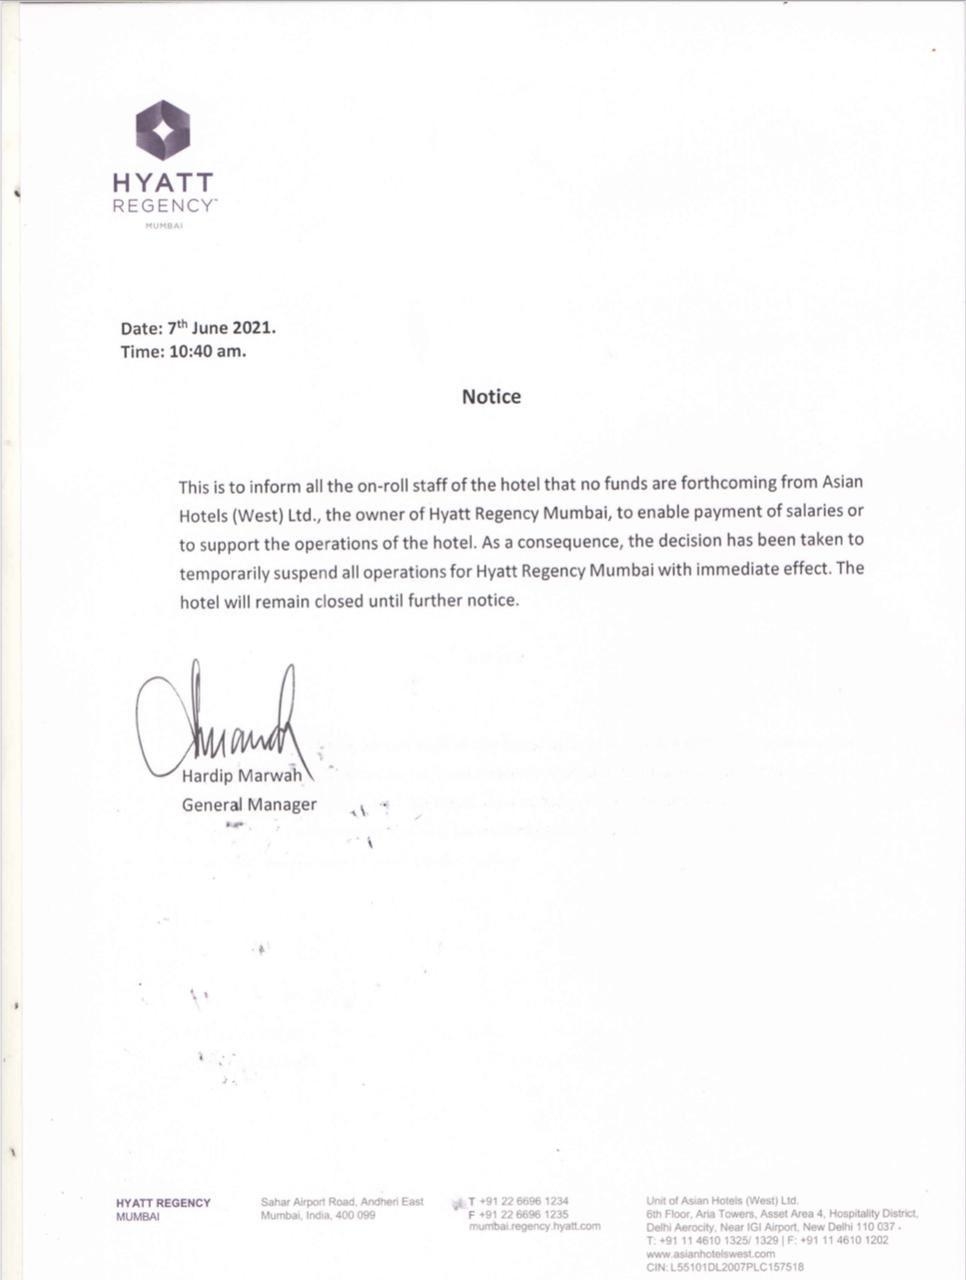 Hyatt Regency Mumbai says working to resolve situation after temporarily suspending operations amid 'Financial Crunch'